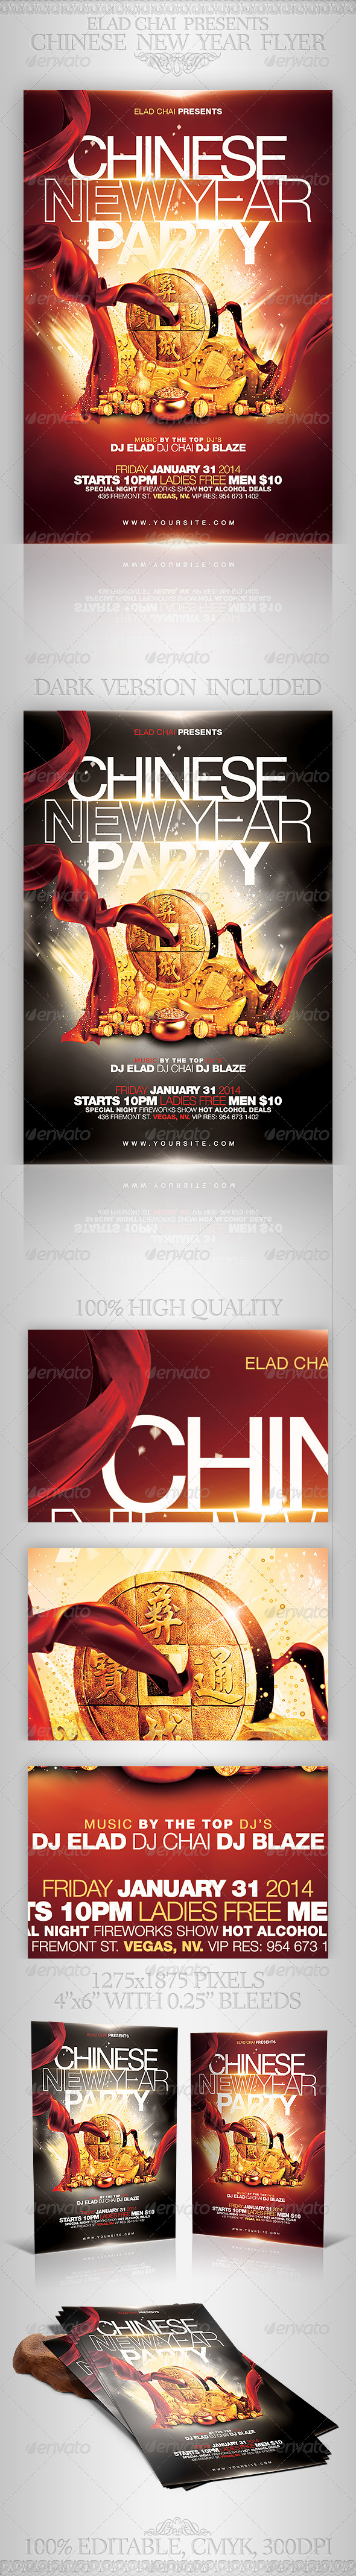 Chinese New Year Party Flyer Template - Holidays Events